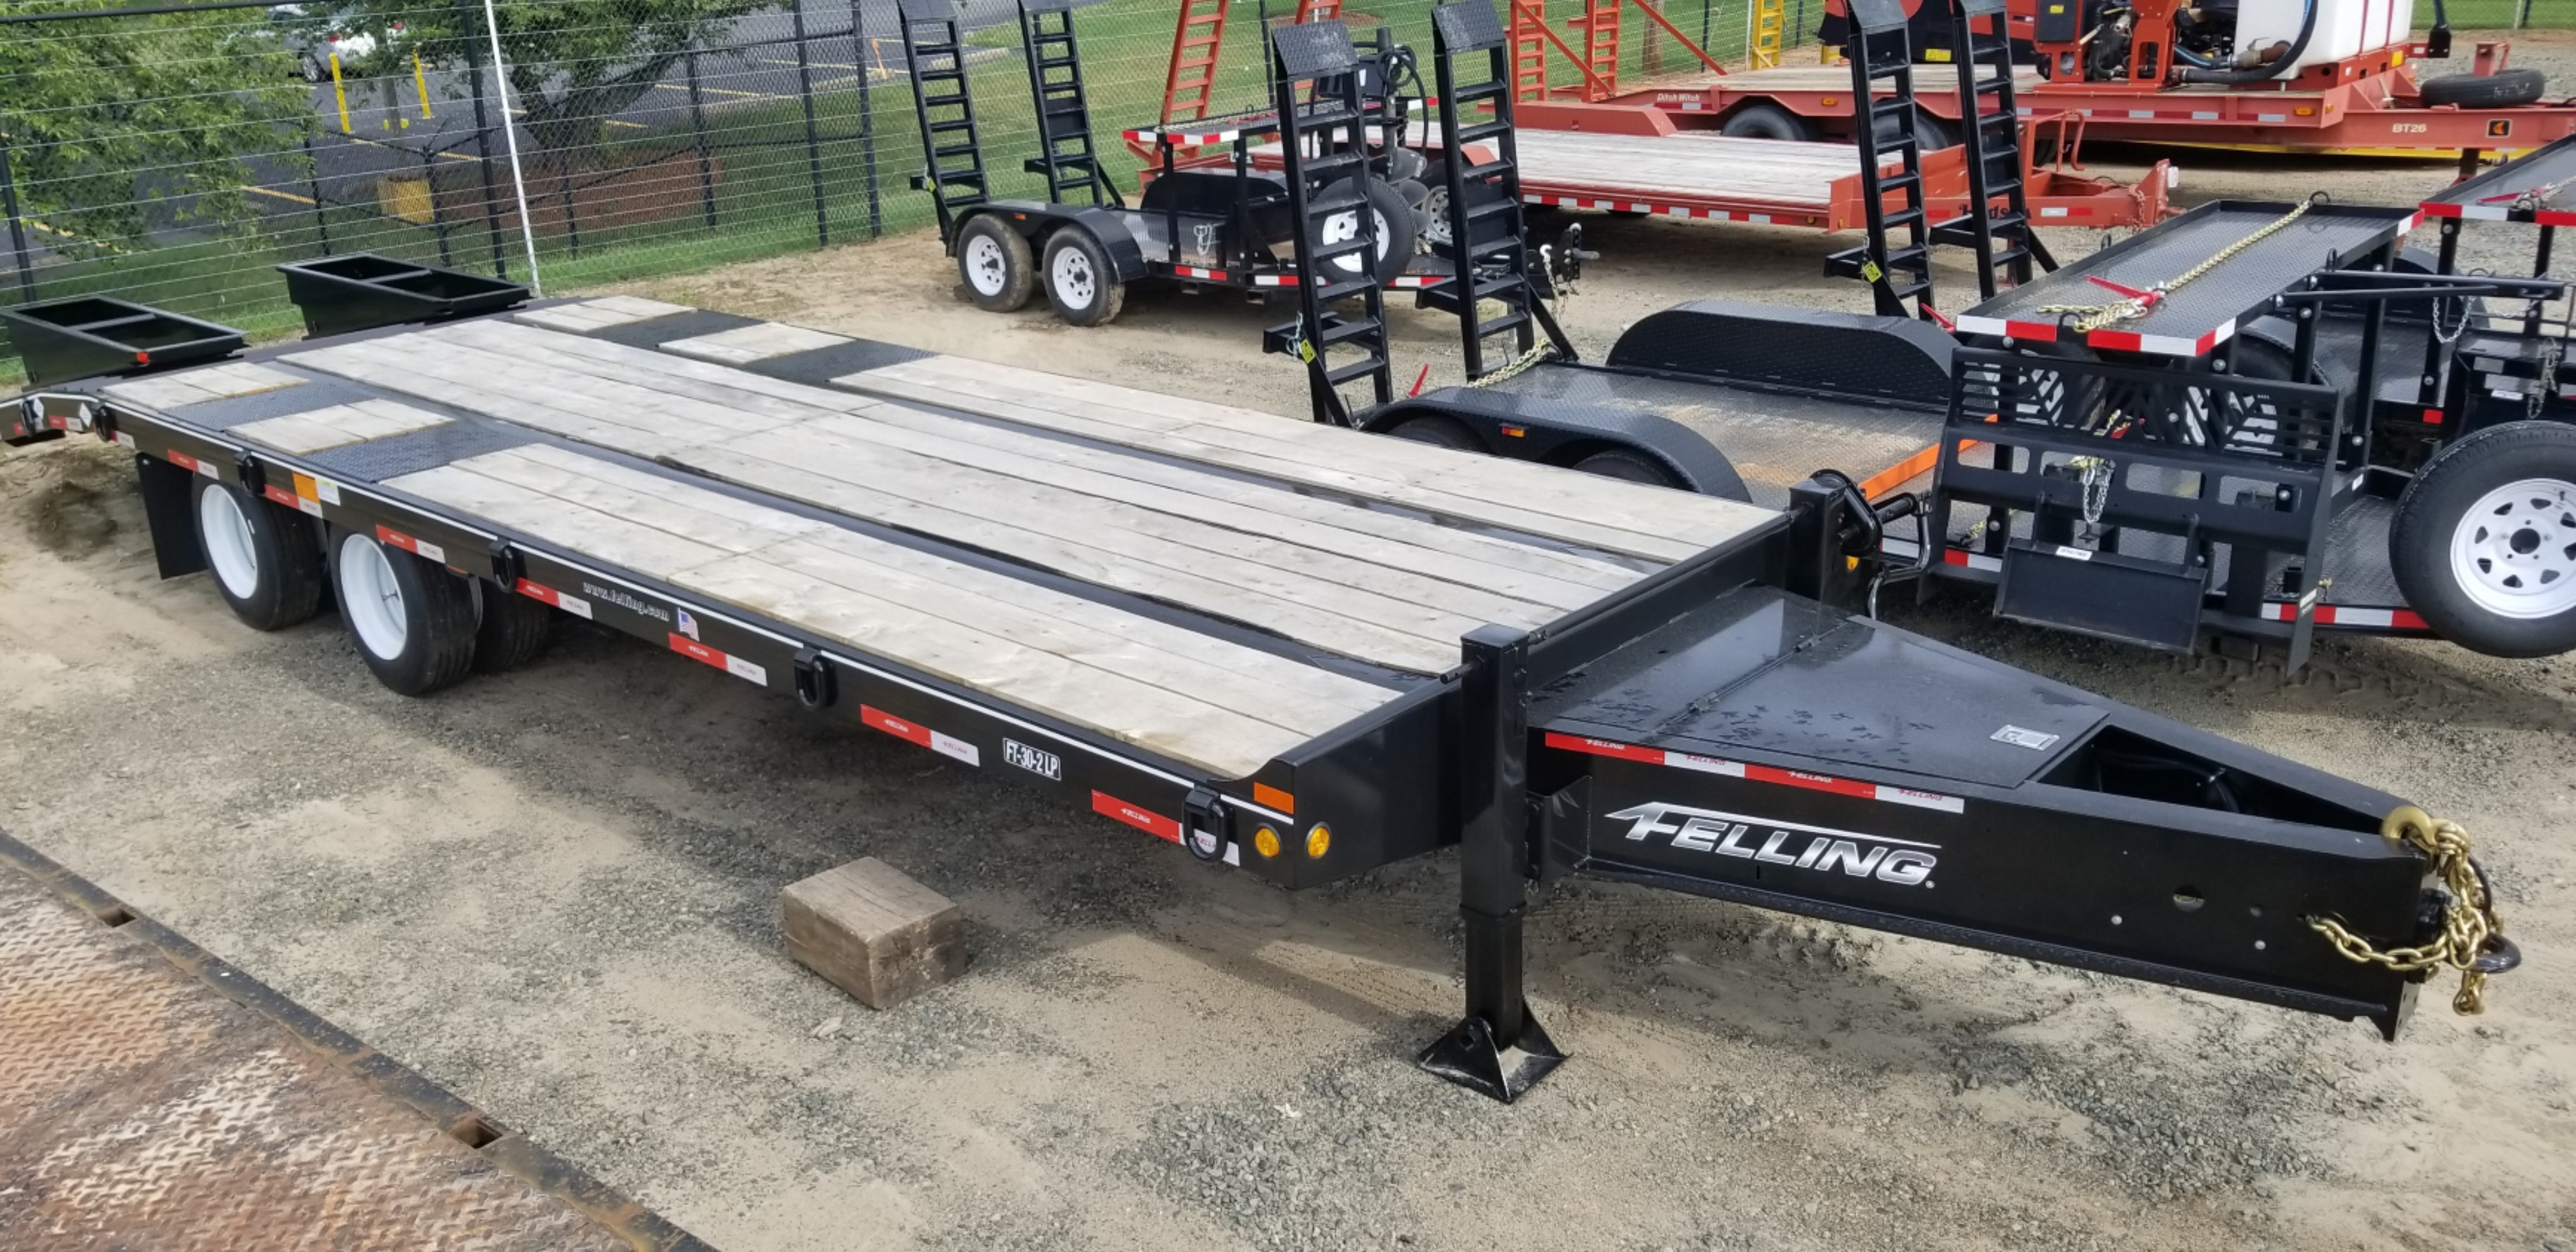 new felling trailers ft 30 2 lp deck over tag in charlotte, nc  felling trailer wiring harness for a #8